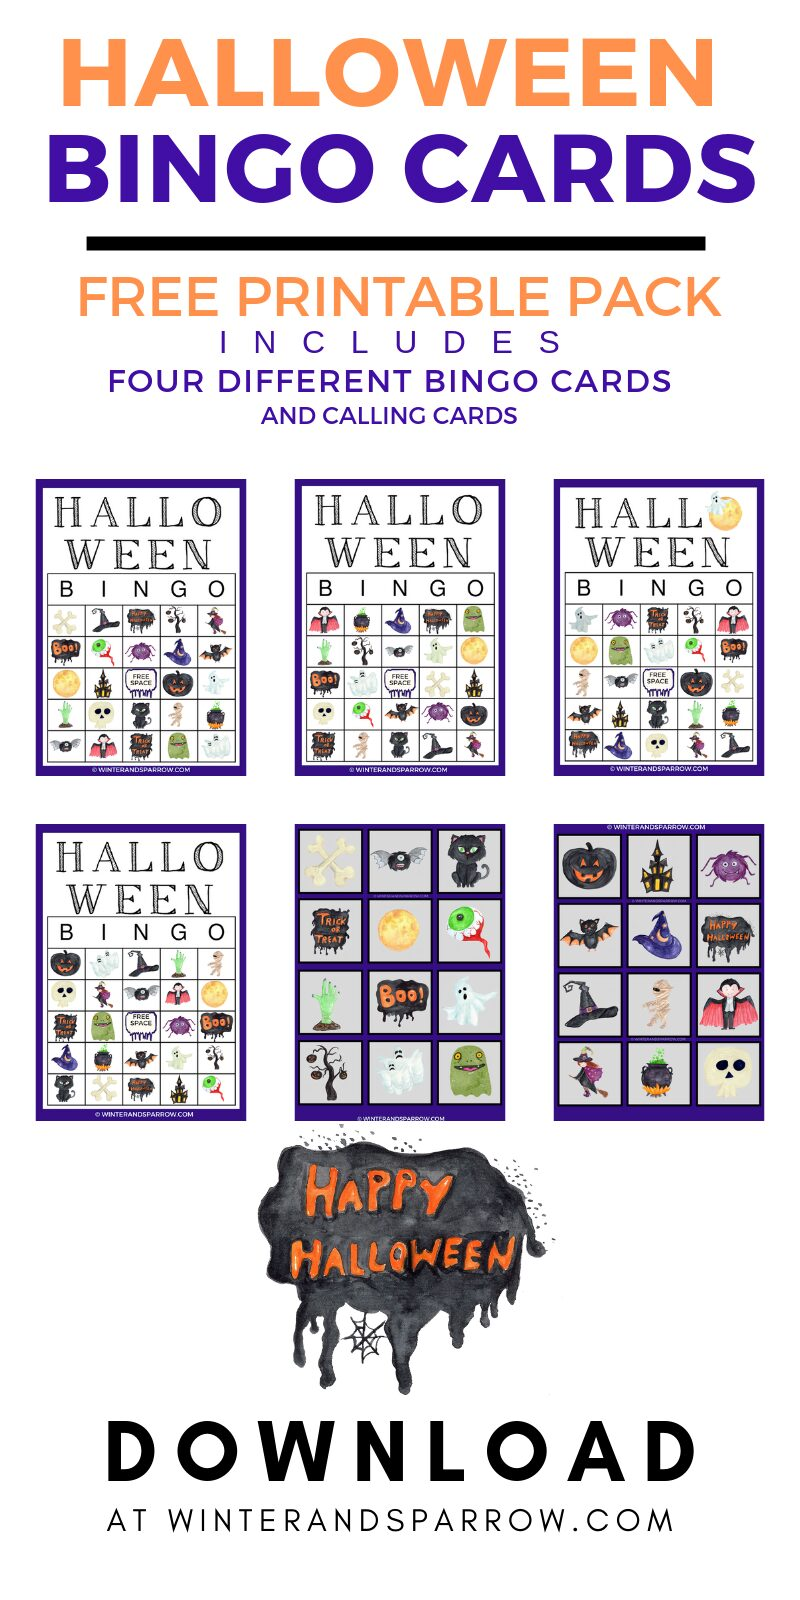 graphic about Free Printable Halloween Bingo Cards known as Halloween Printable BINGO Playing cards: Consists of 4 Alternative